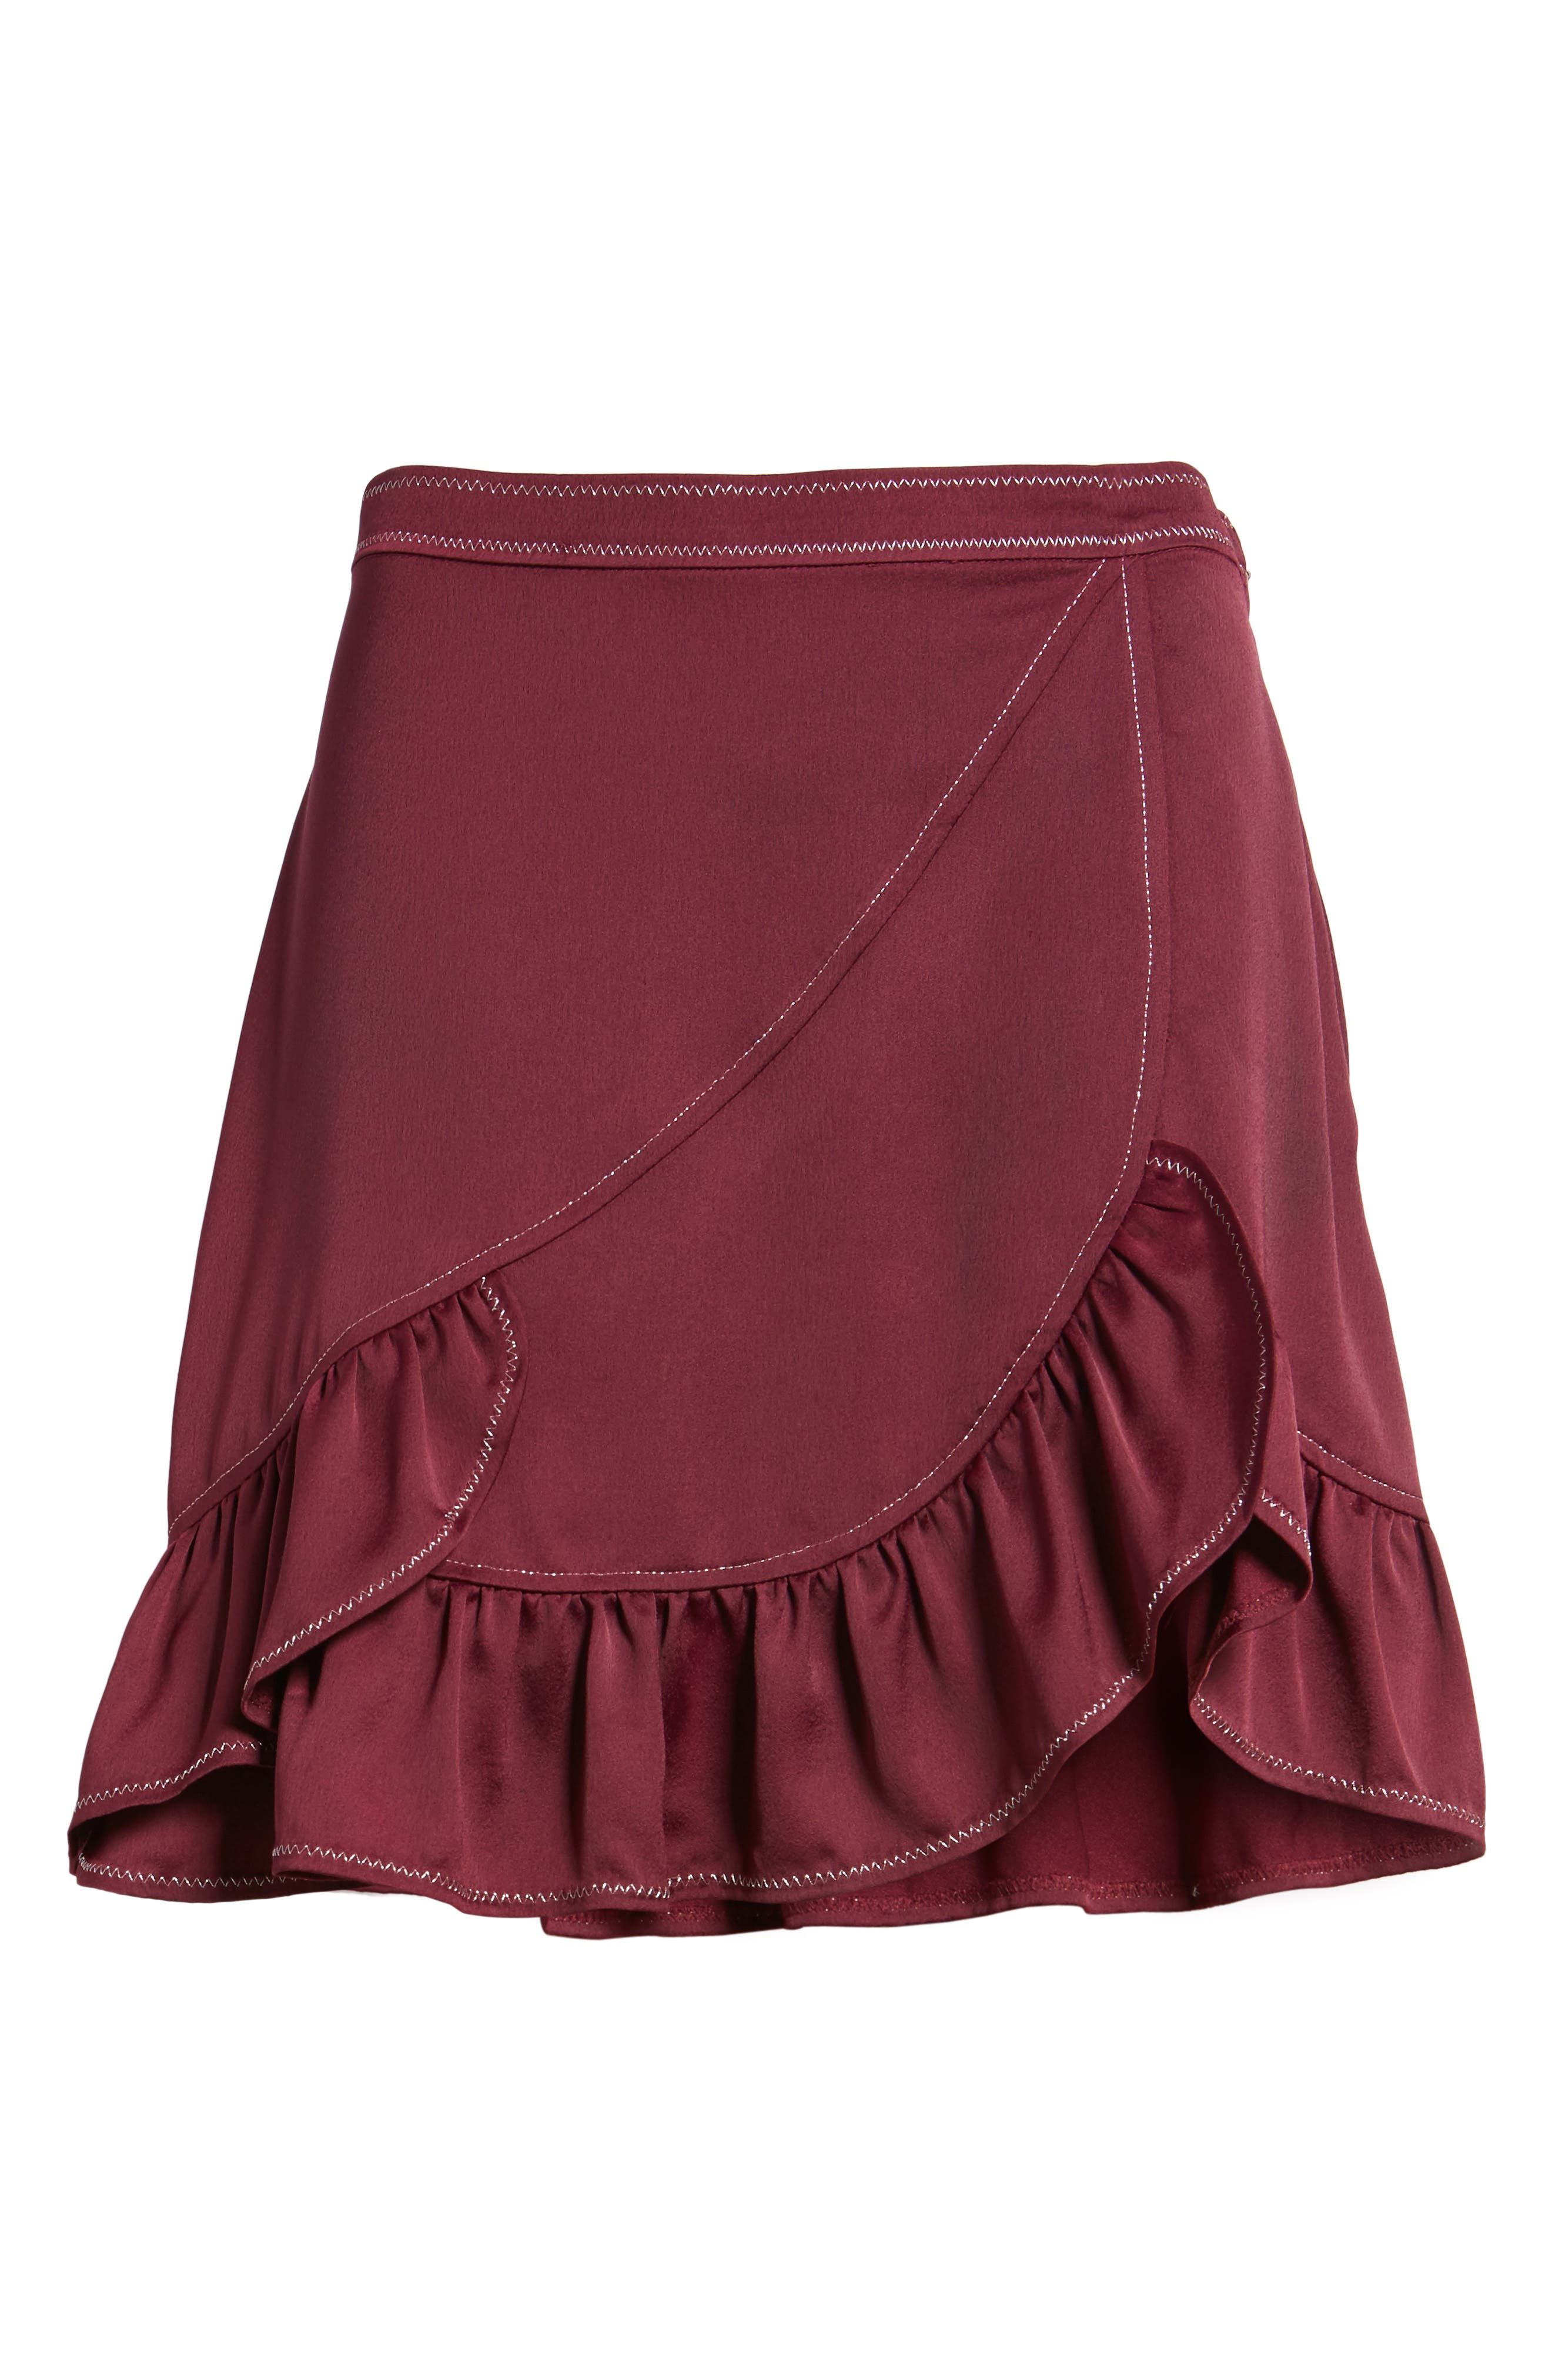 Brielle Ruffle Miniskirt,                             Alternate thumbnail 6, color,                             506